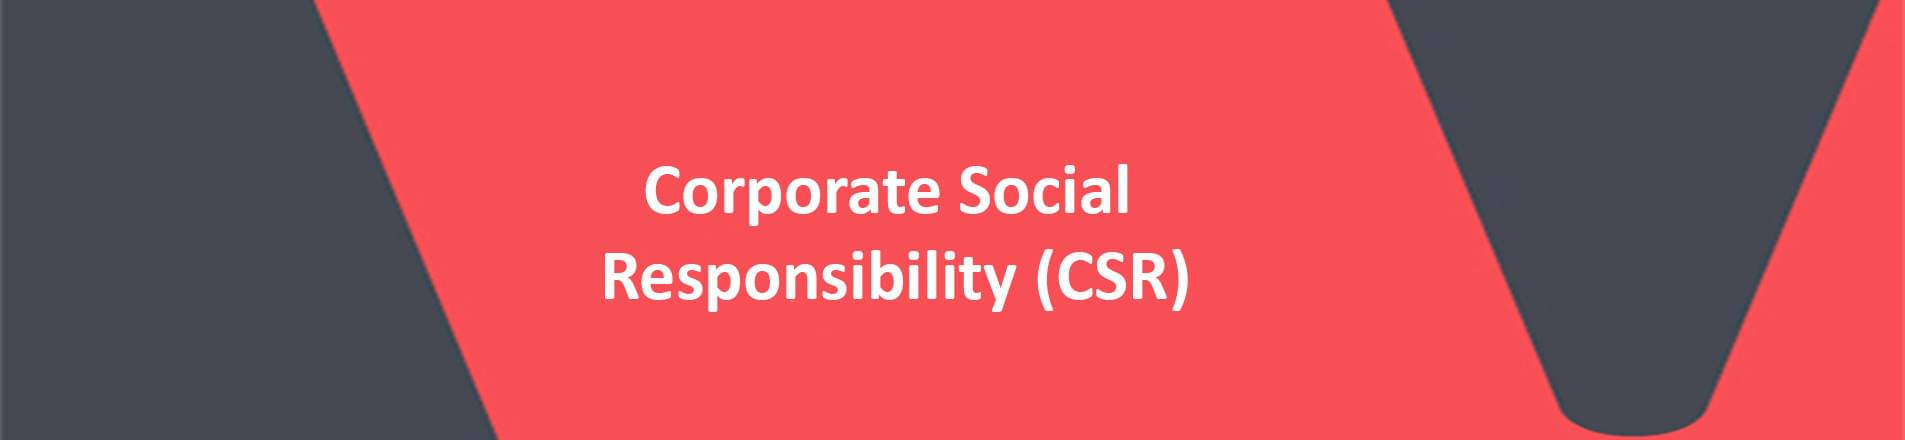 red banner with white text reading corporate social responsibility csr